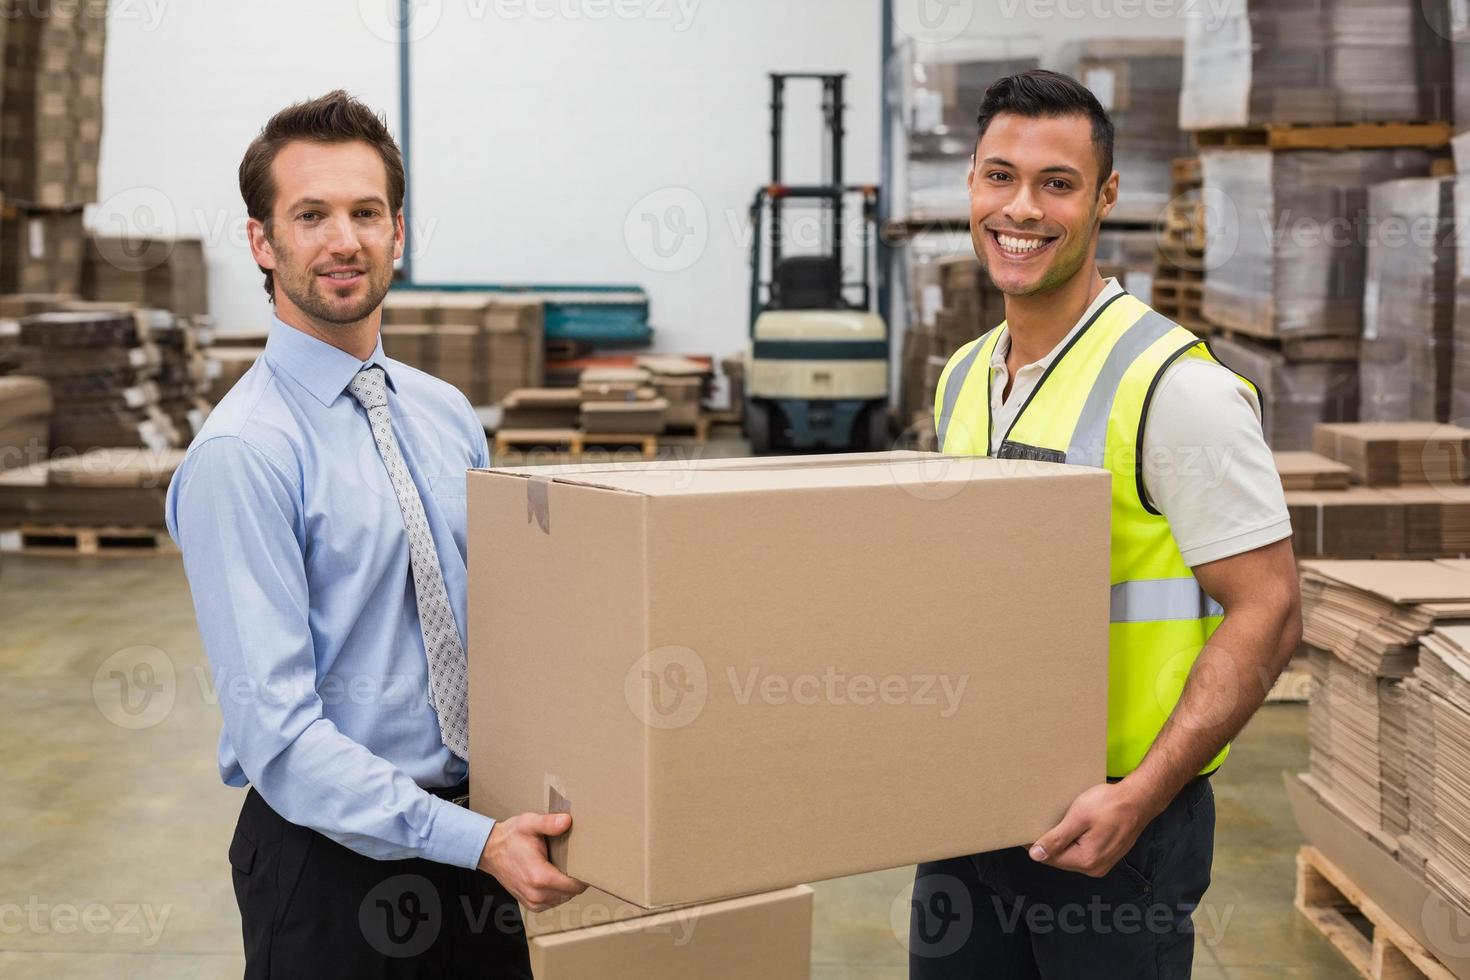 Warehouse worker and manager passing a box photo